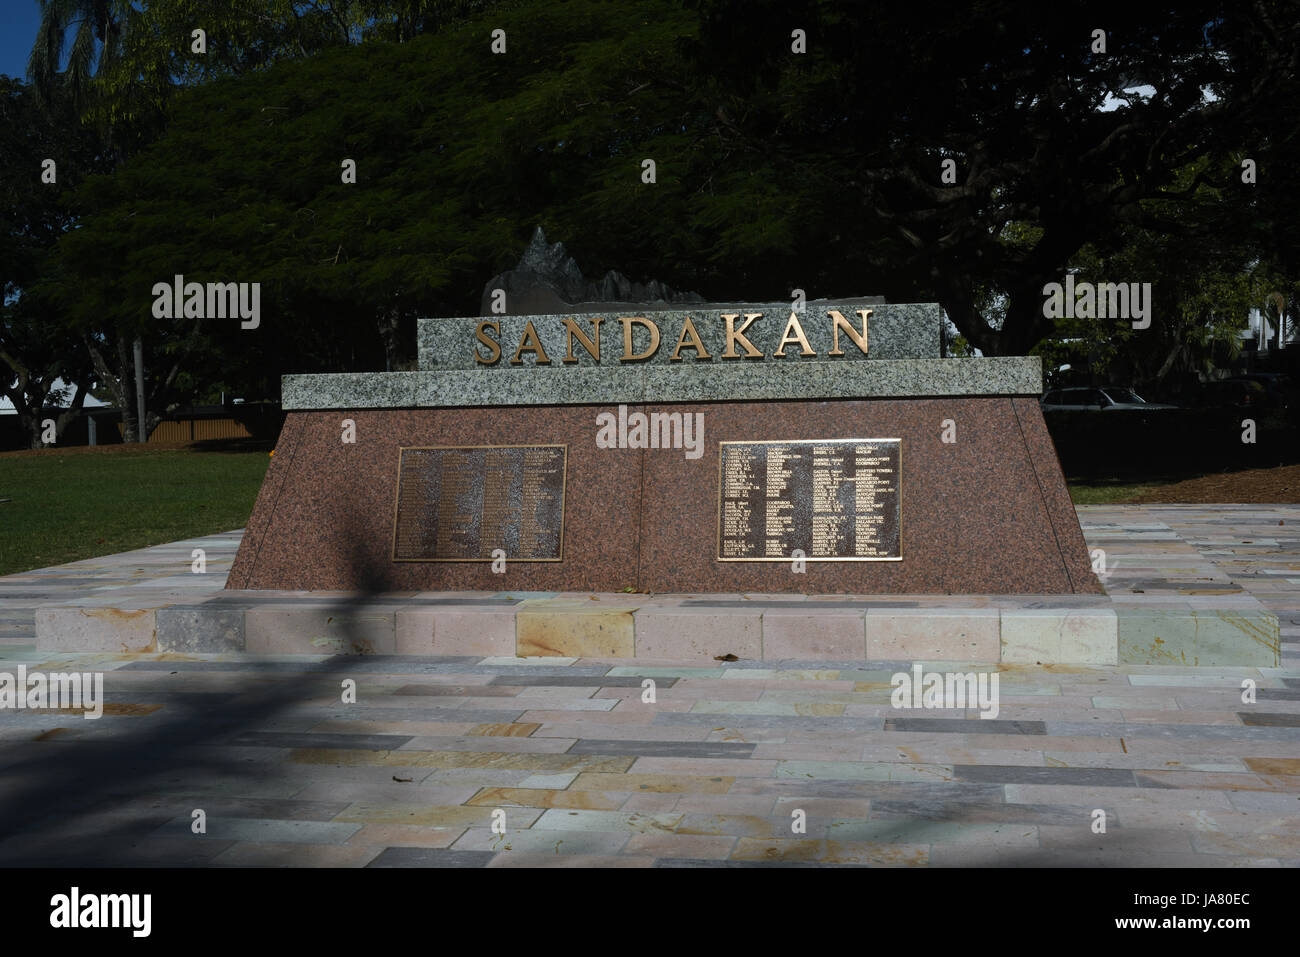 New Farm Park, Brisbane, Australia: Memorial to the victims of the Sandakan Death March in World War 2 - Stock Image